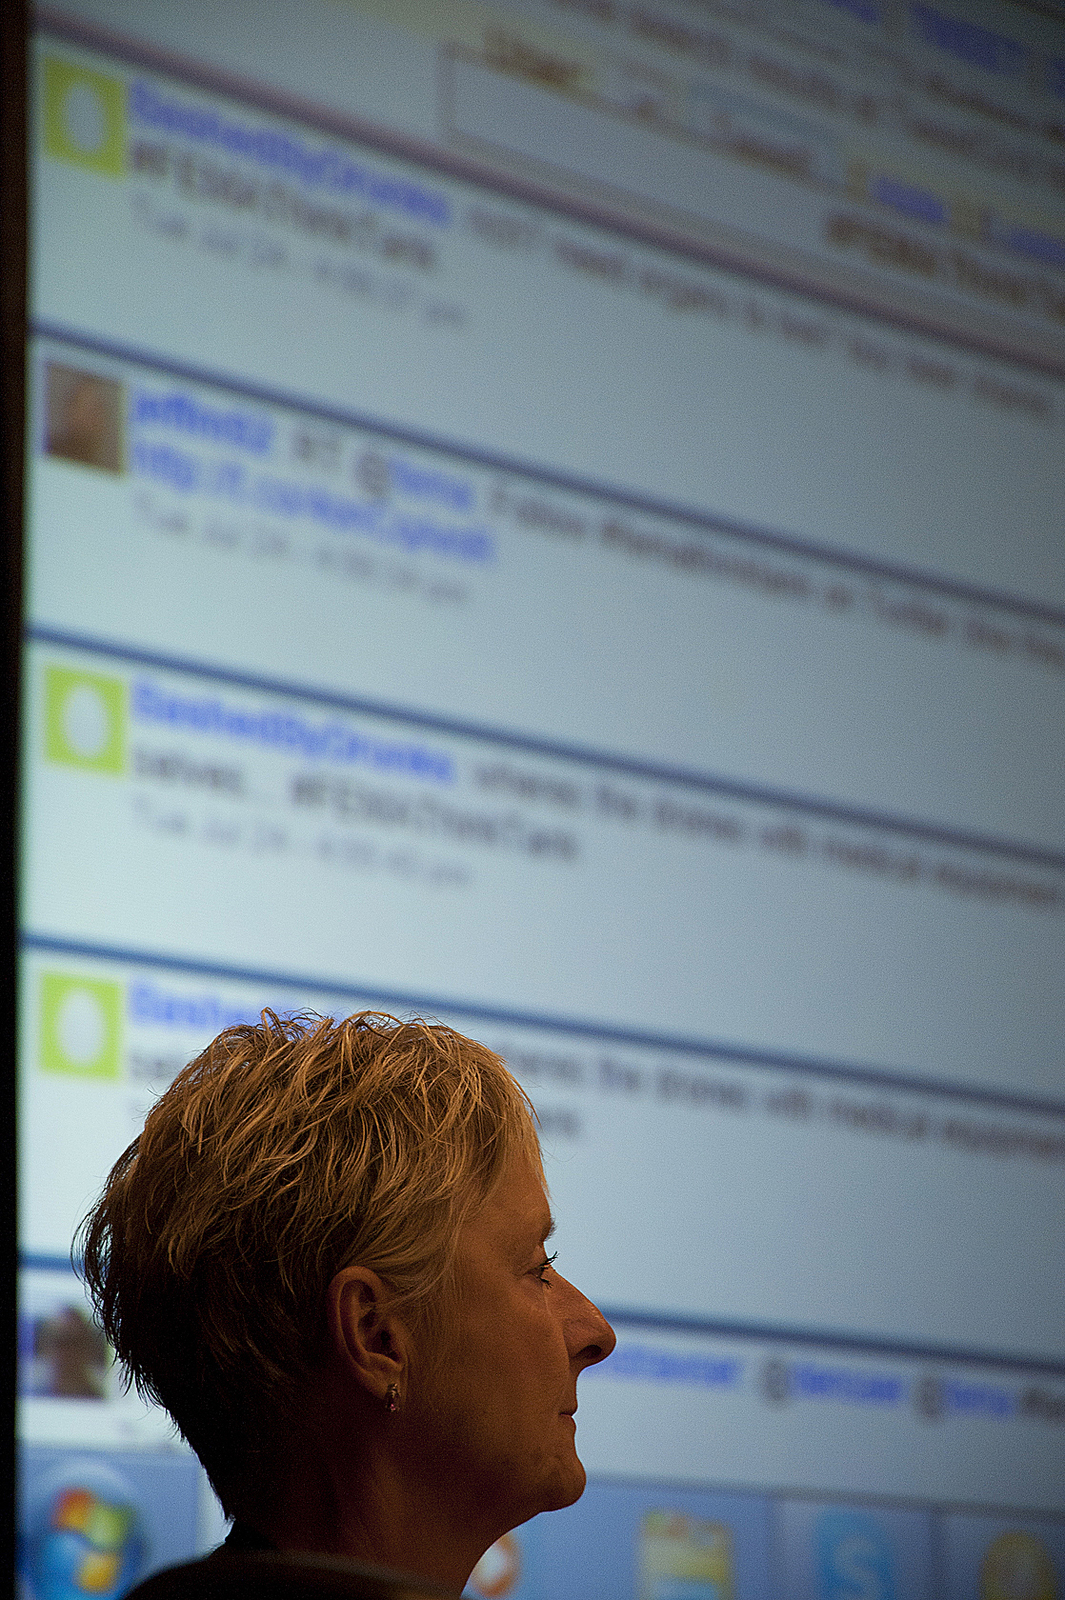 Emergency Planning and Security - Colorado Springs, Colo. , July 24, 2012 -- A FEMA Think Tank participant watches discussion with the national streaming Twitter feed in background. The Think Tank was held Tue. , July 24 in Colorado Springs during the two-day Building Resilience through Public-Private Partnerships Conference.